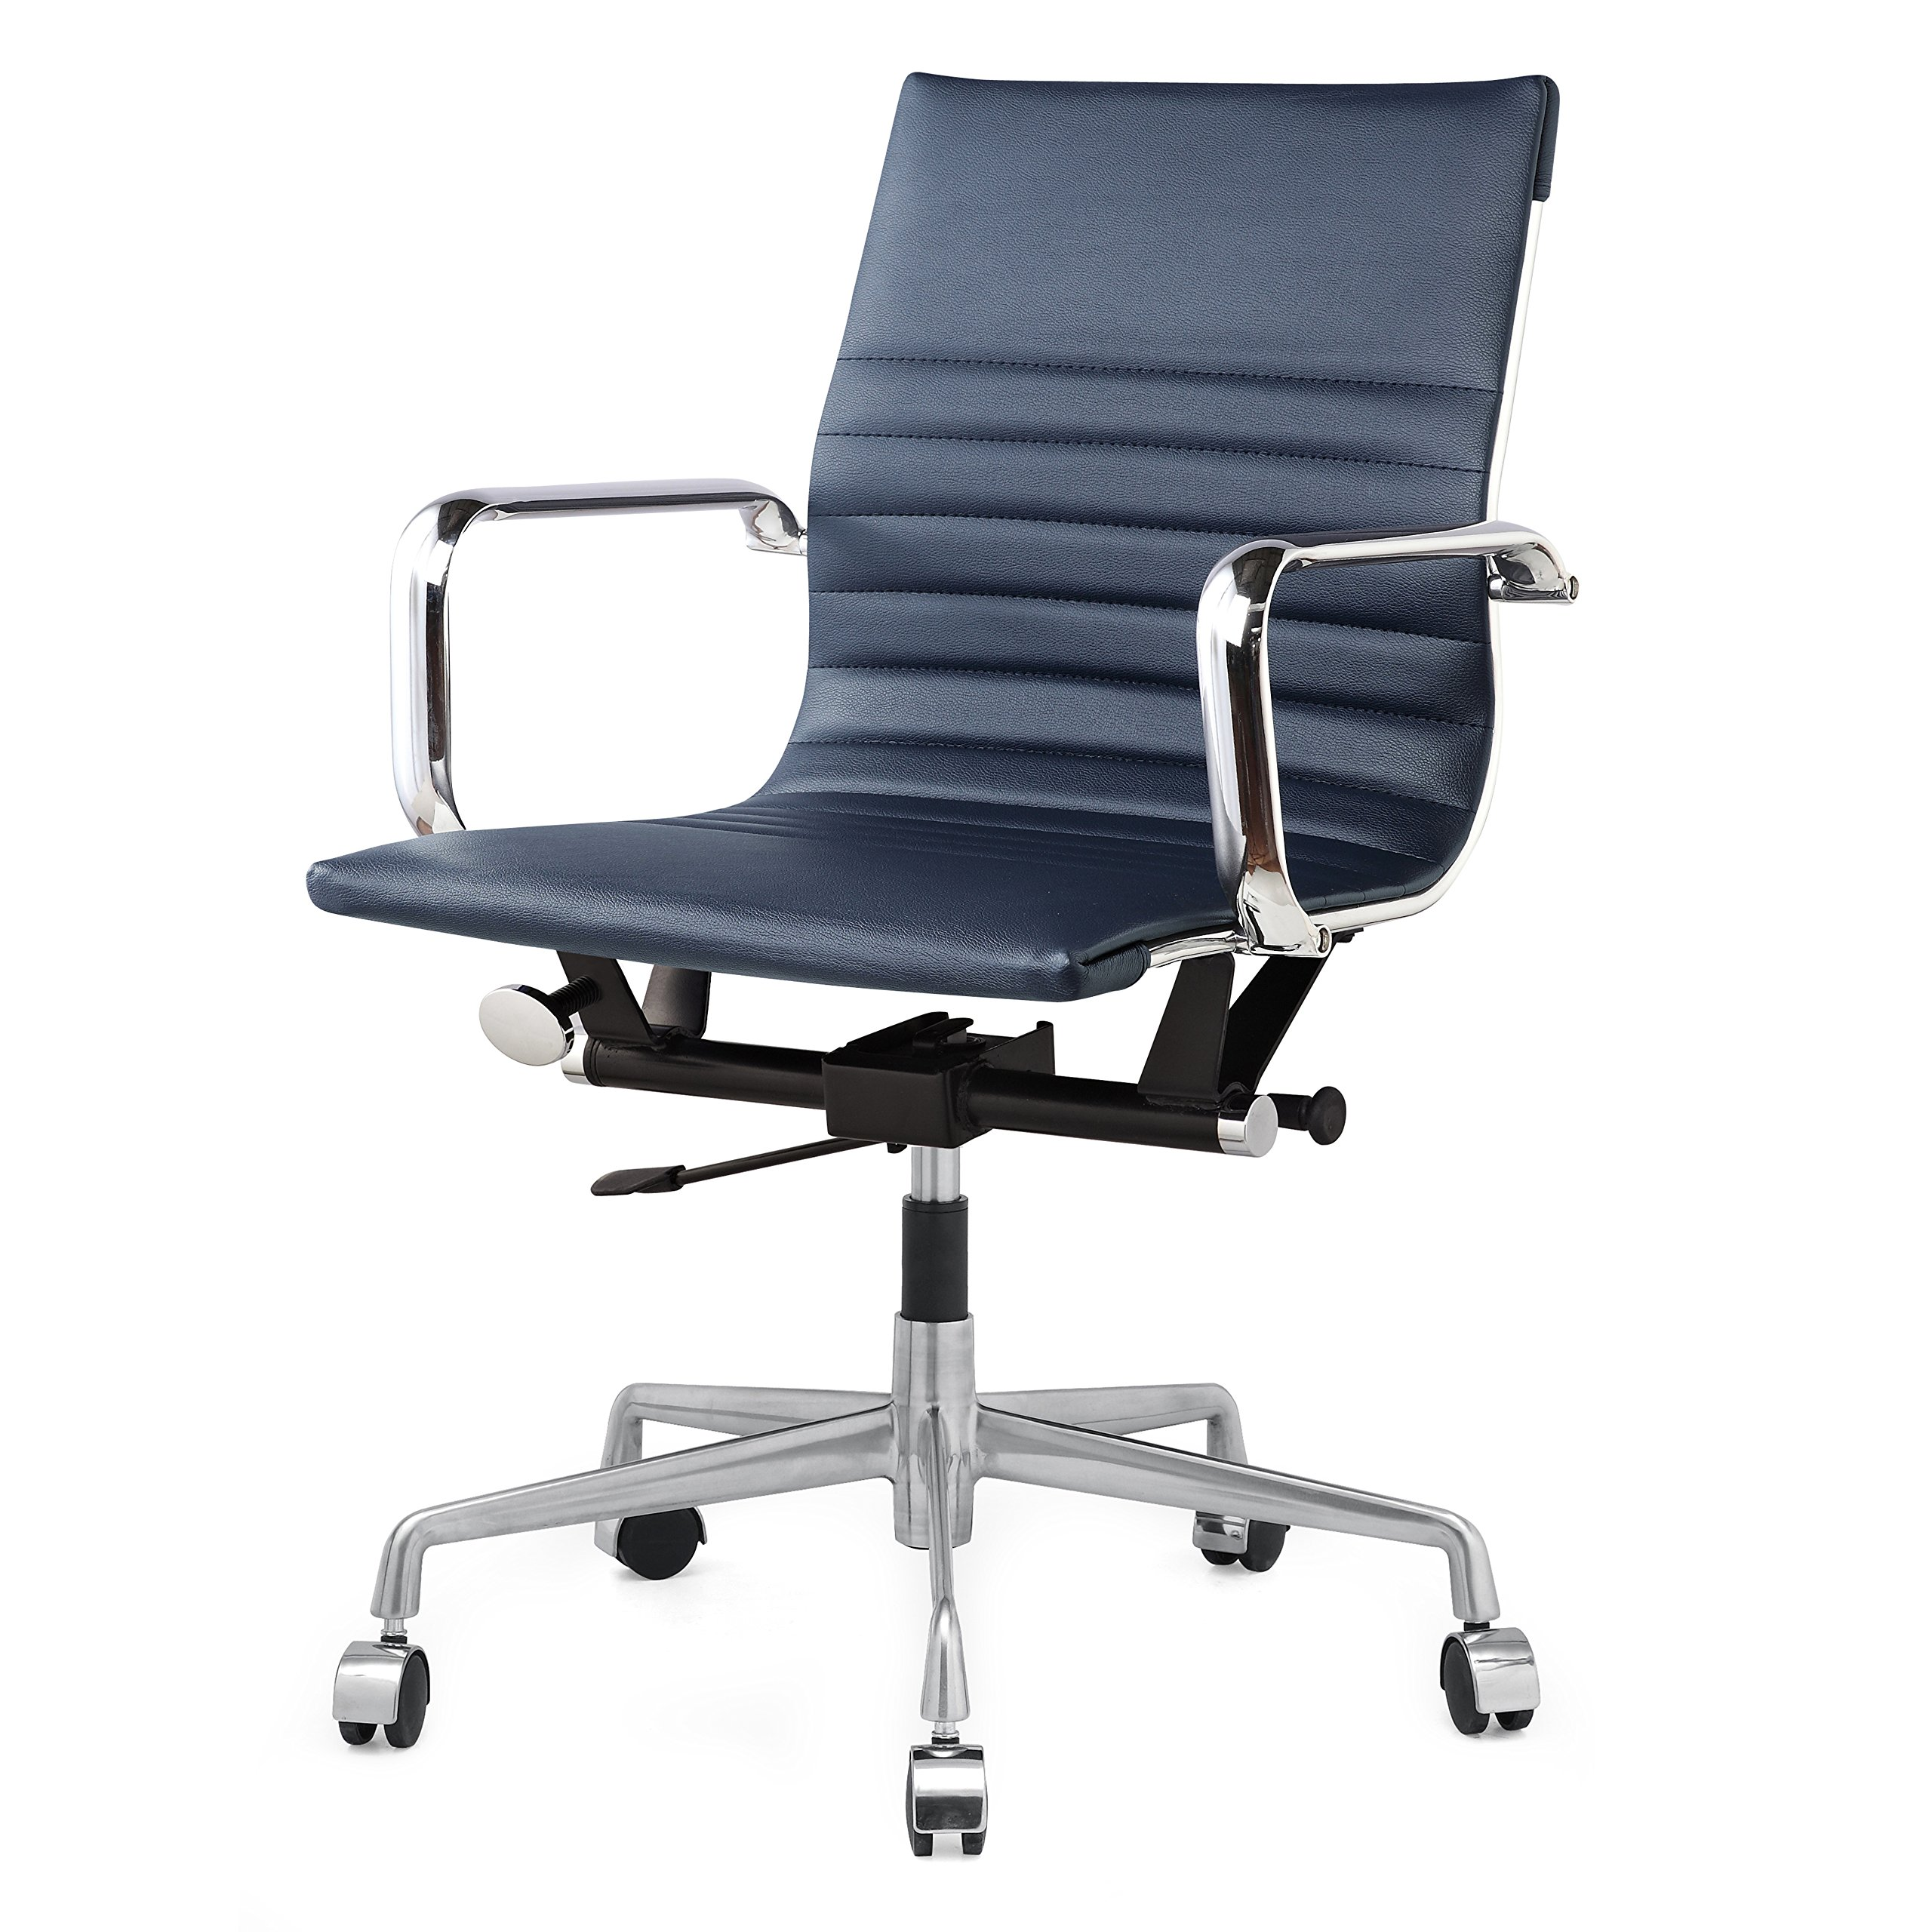 Meelano 348-NVY M348 Home Office Chair, 33.93'' x 23.4'' x 22.23'', Navy Blue by Meelano